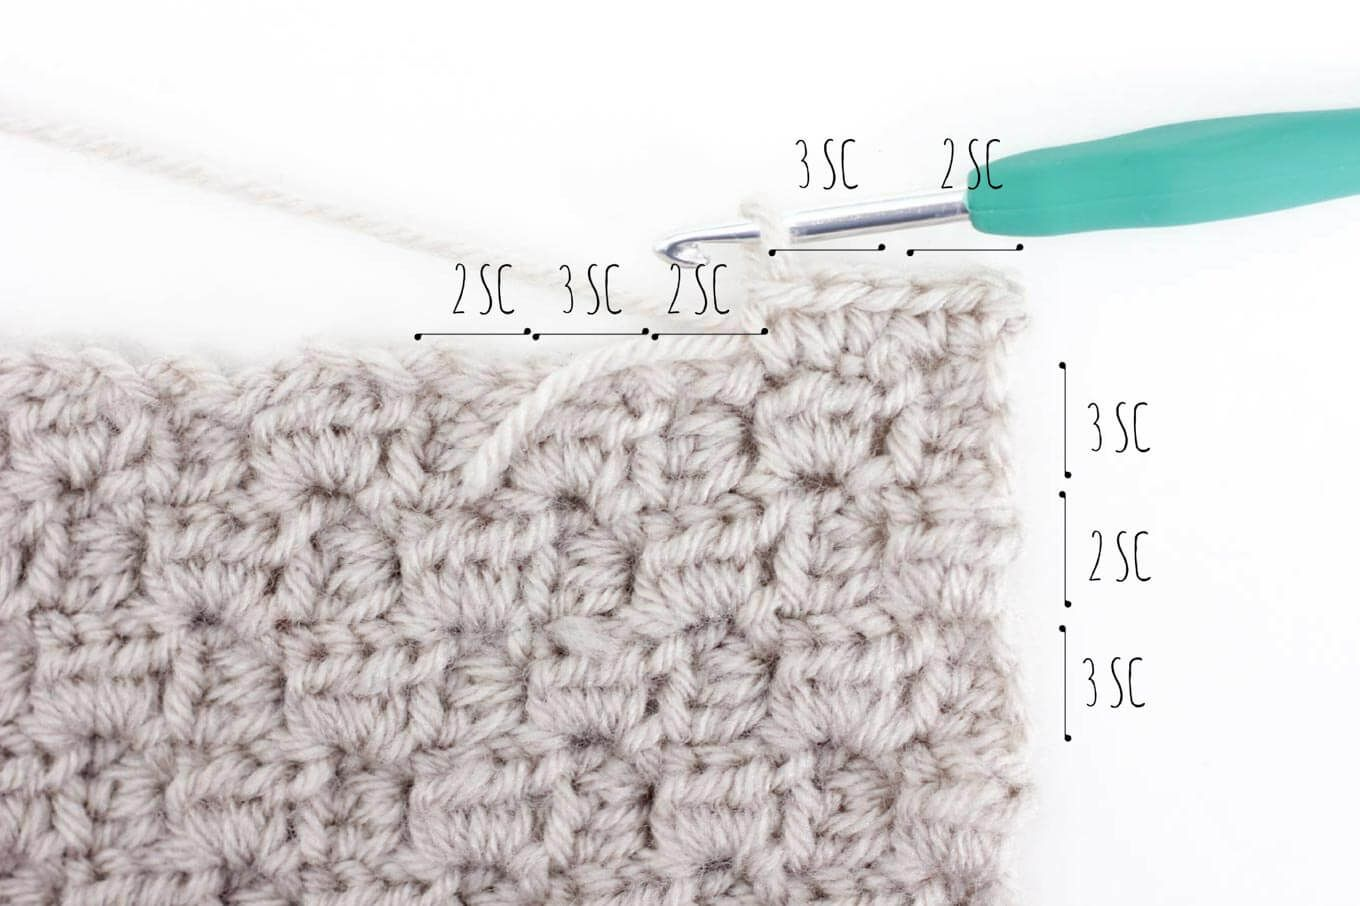 How To Add a Border to a C2C Afghan Block - Detailed Photo Tutorial